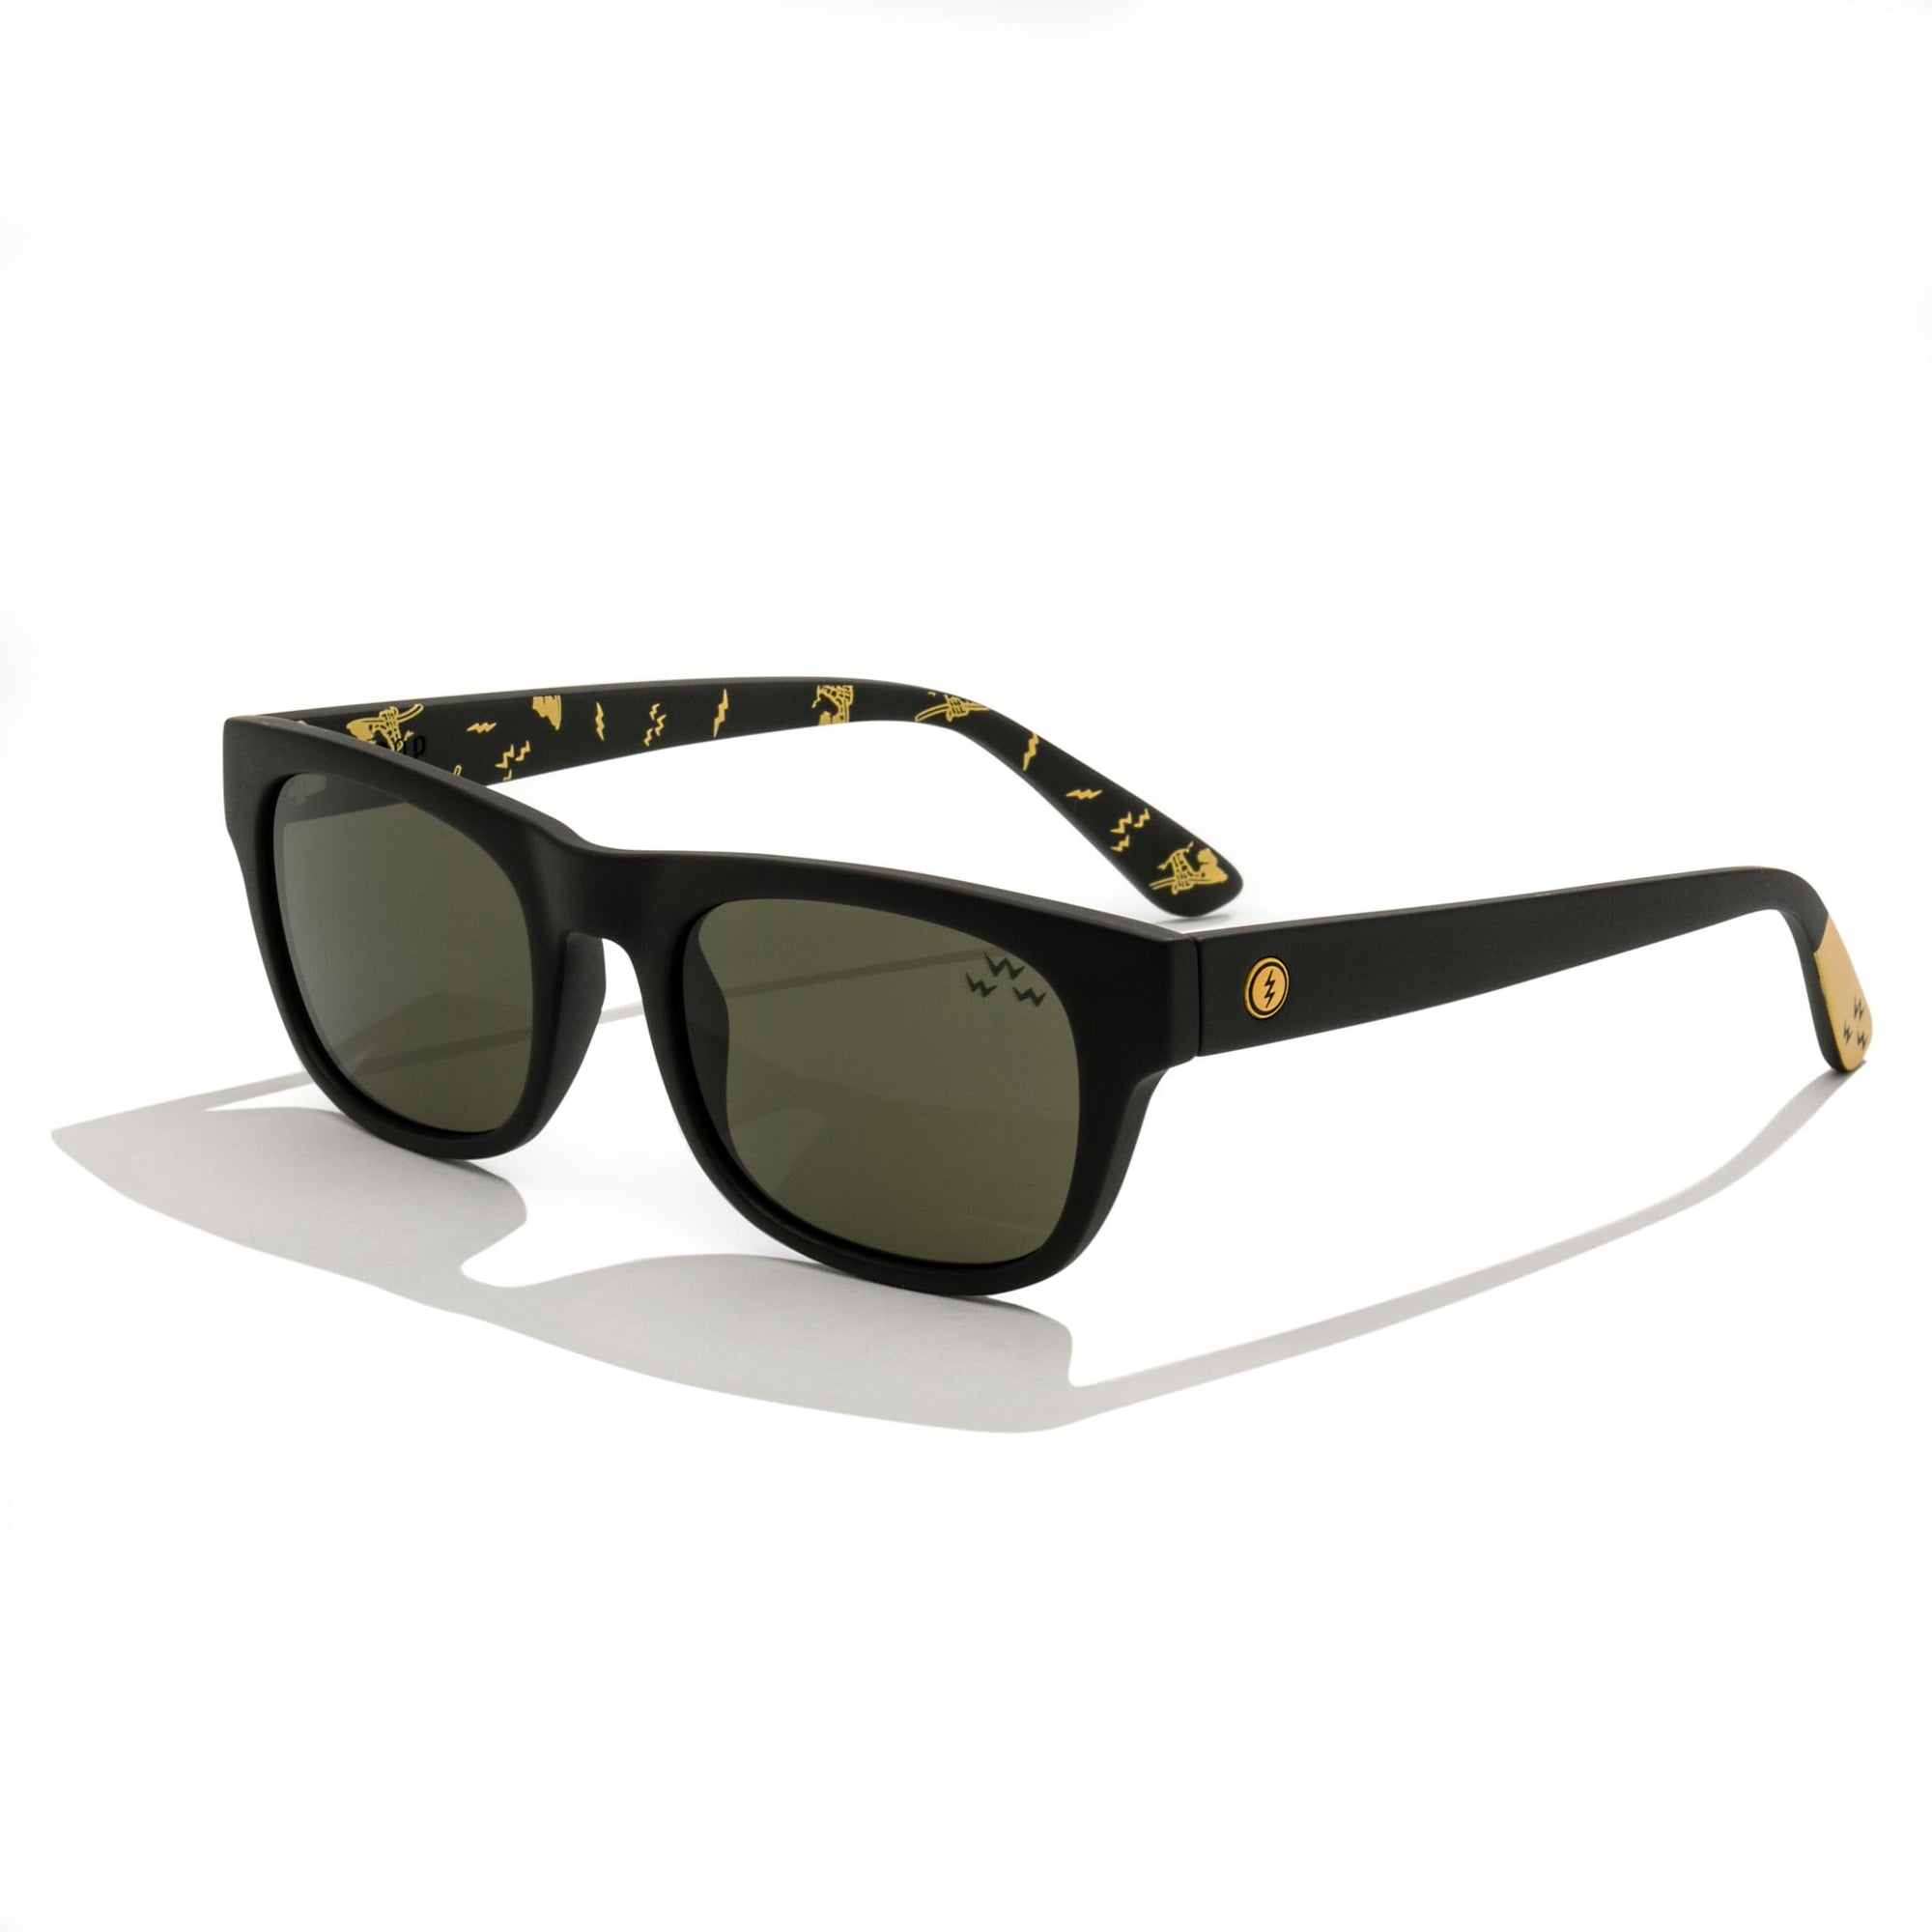 birds-of-condor-black-electric-flag-raiders-golf-sunglasses-front